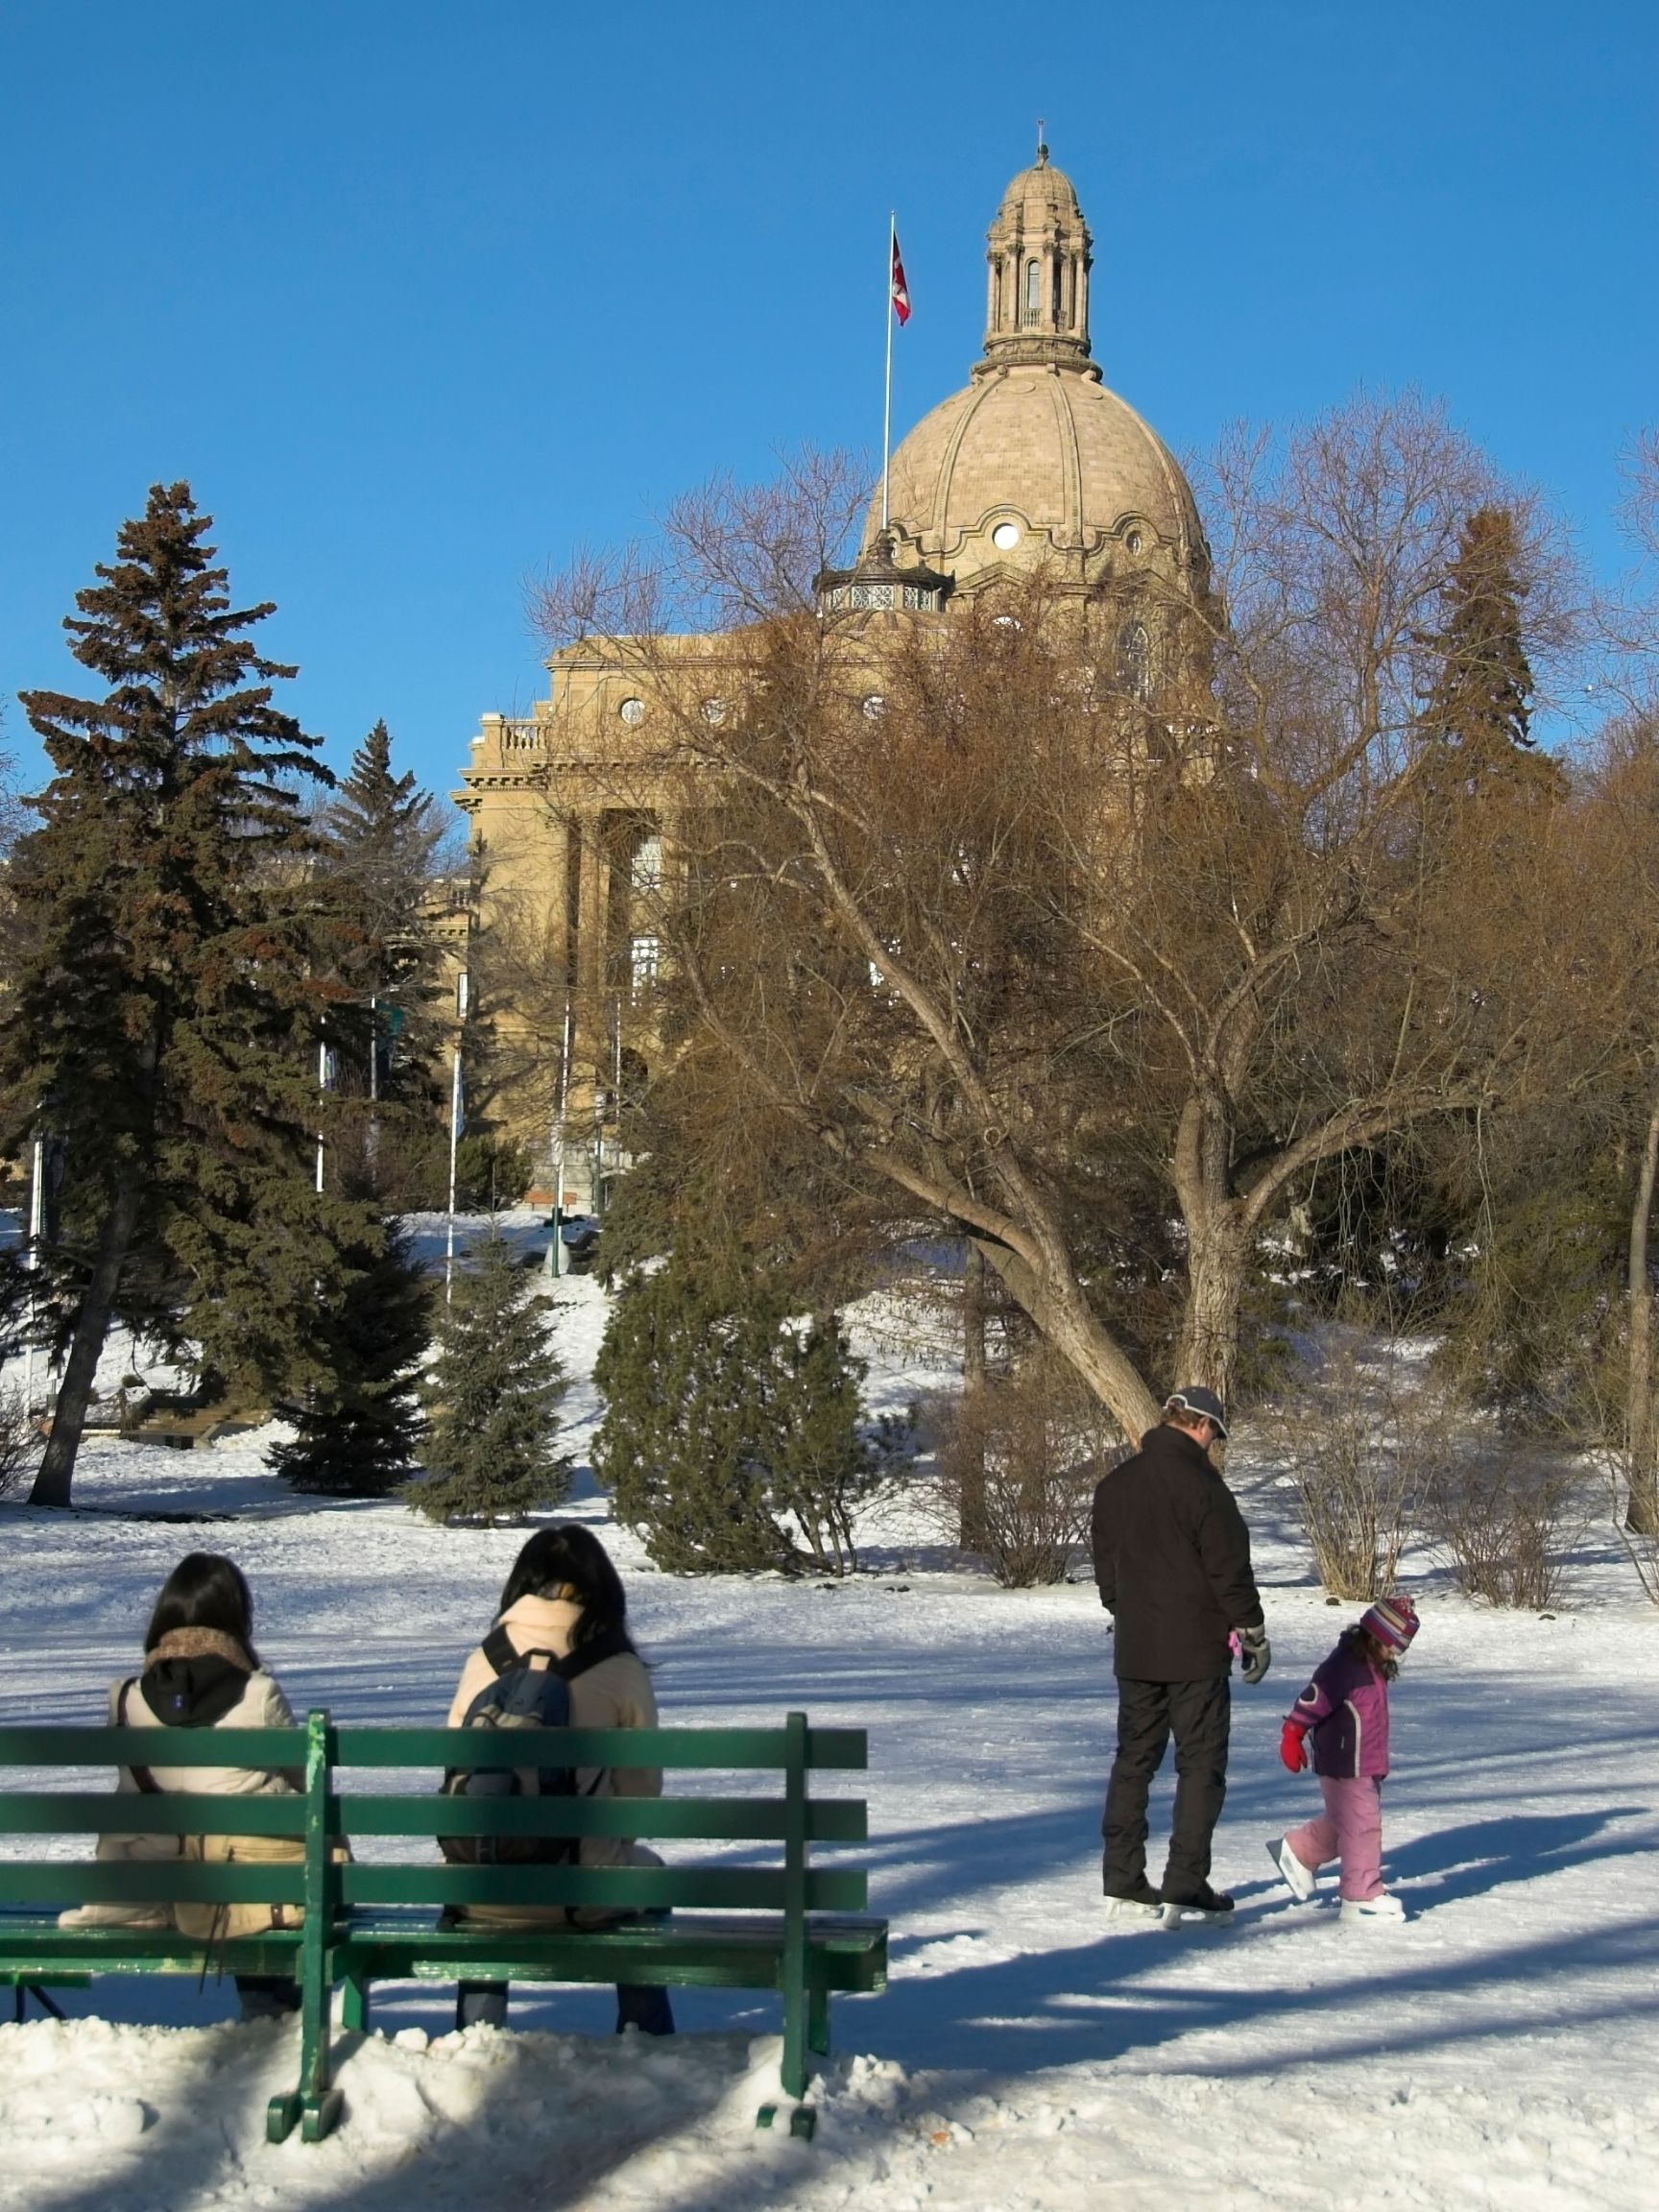 things to do in edmonton in the winter